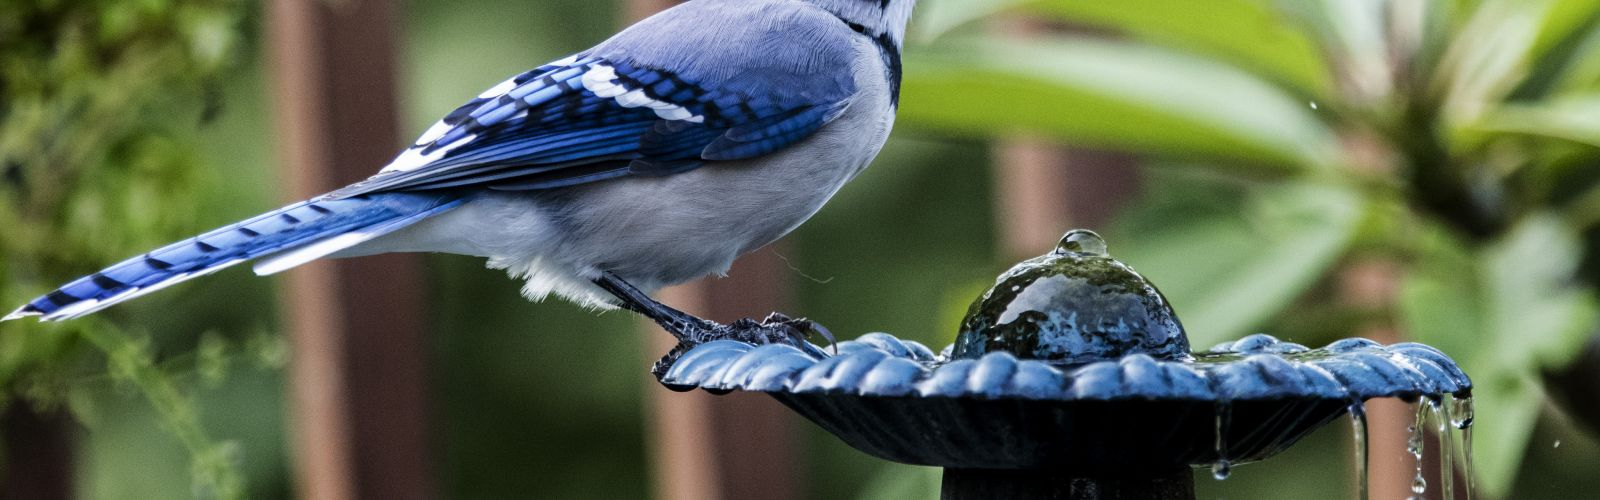 a small blue bird perched on top of a wooden bench